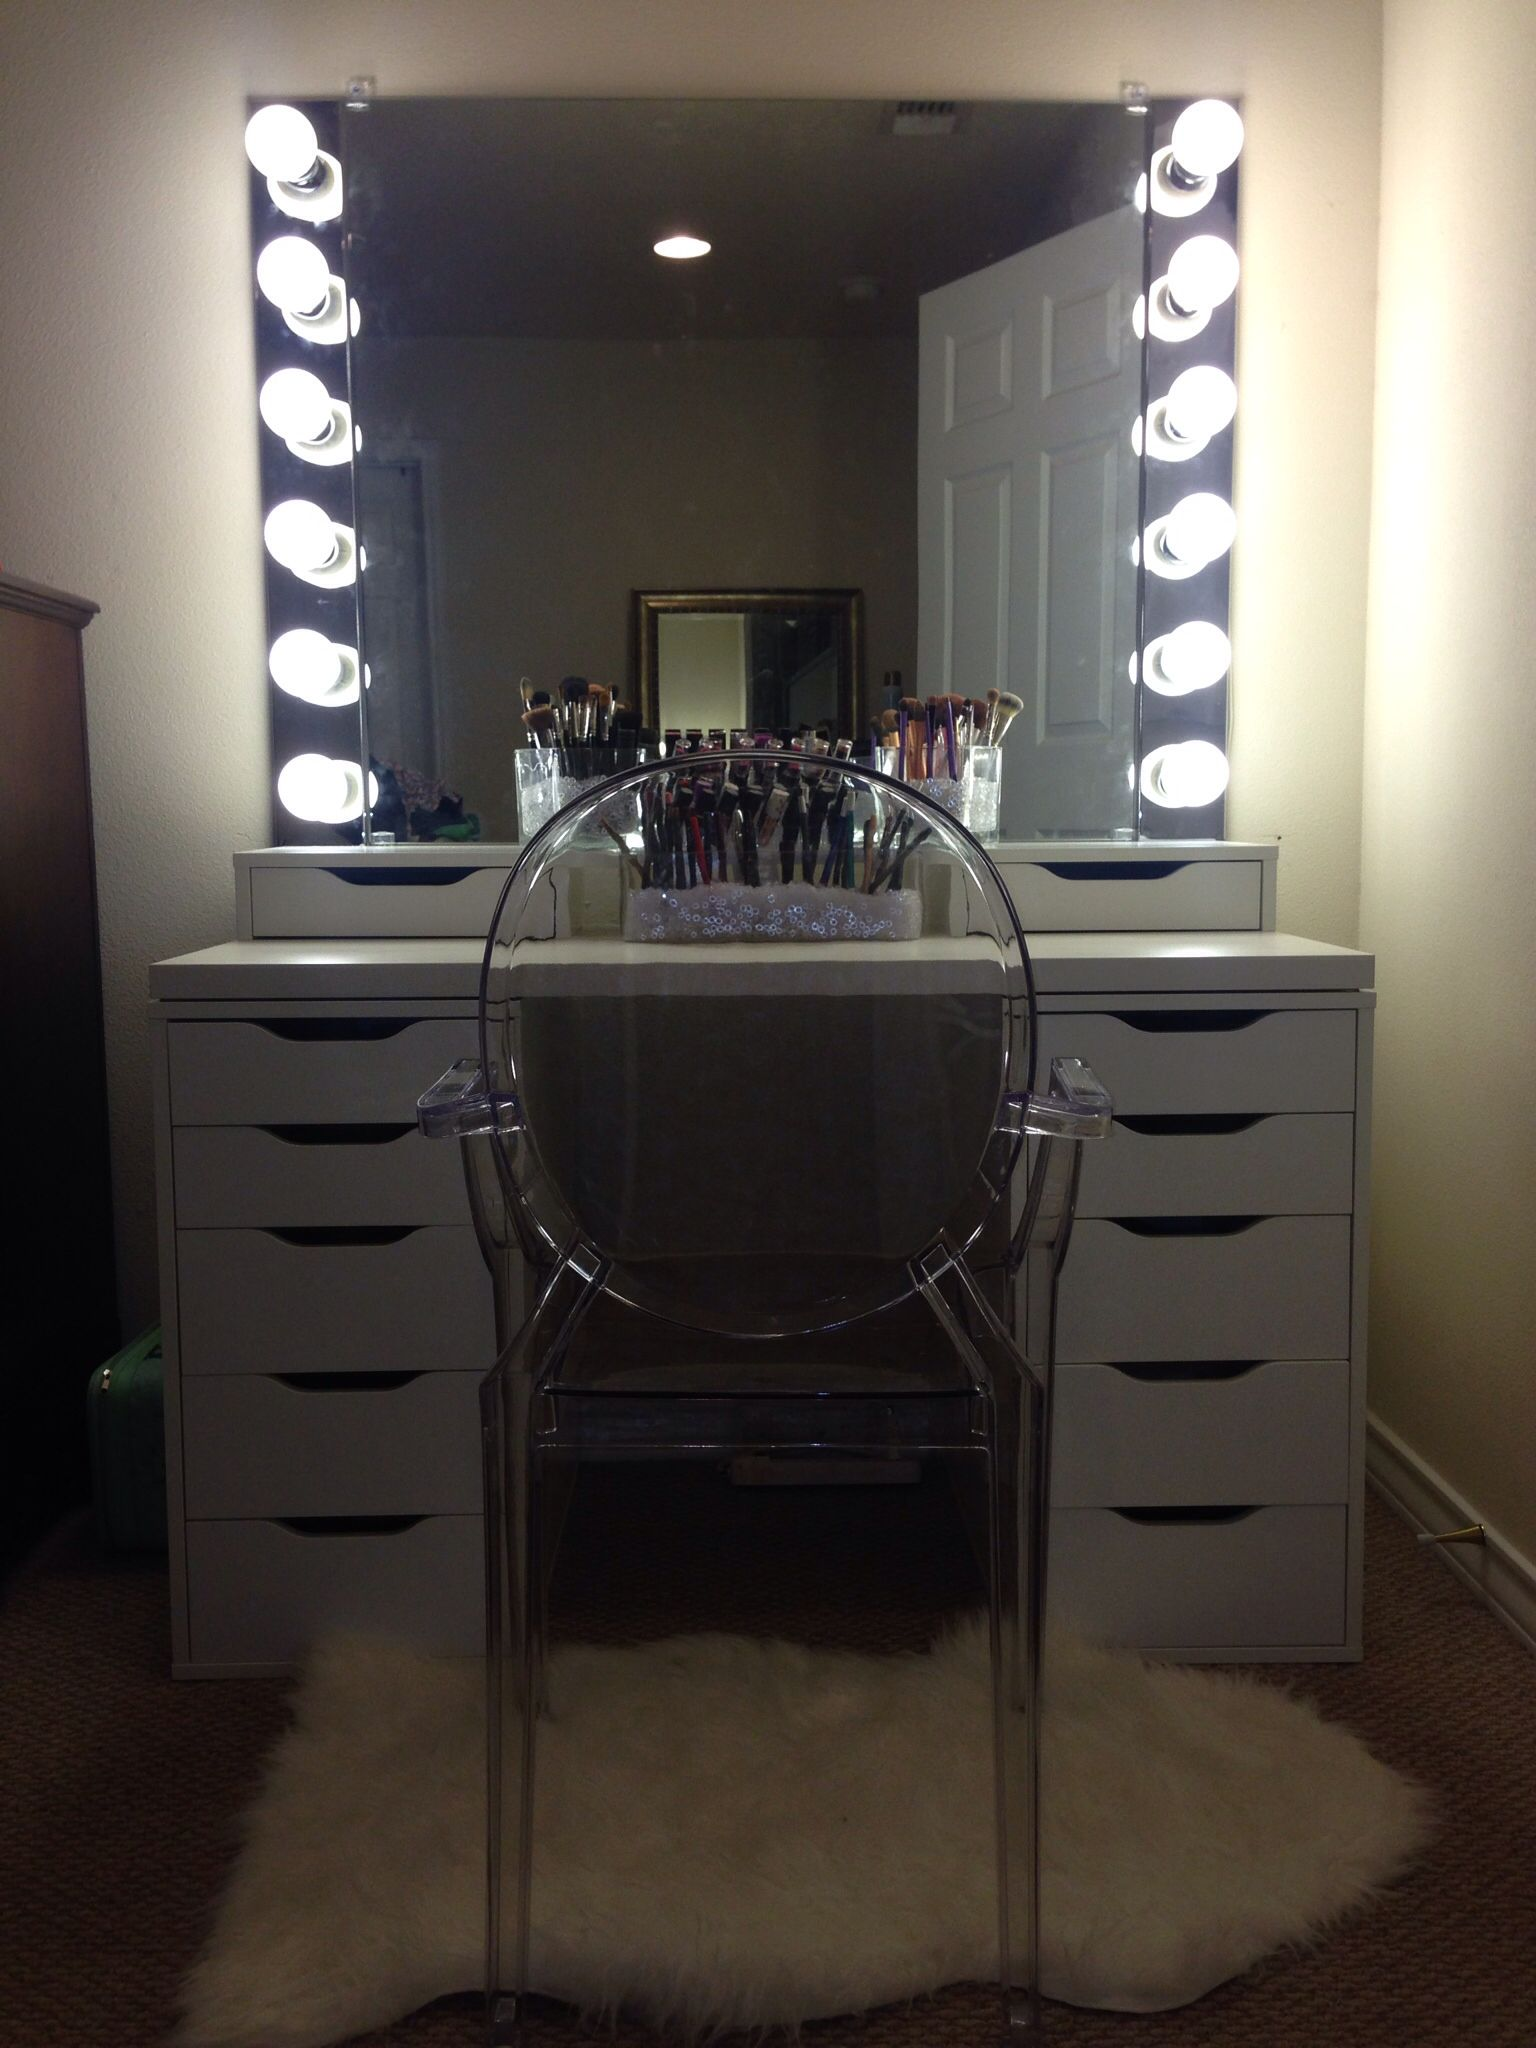 mirrored lighting. Hollywood Vanity Mirror With Lights, Makeup Lights Mirrored Lighting G